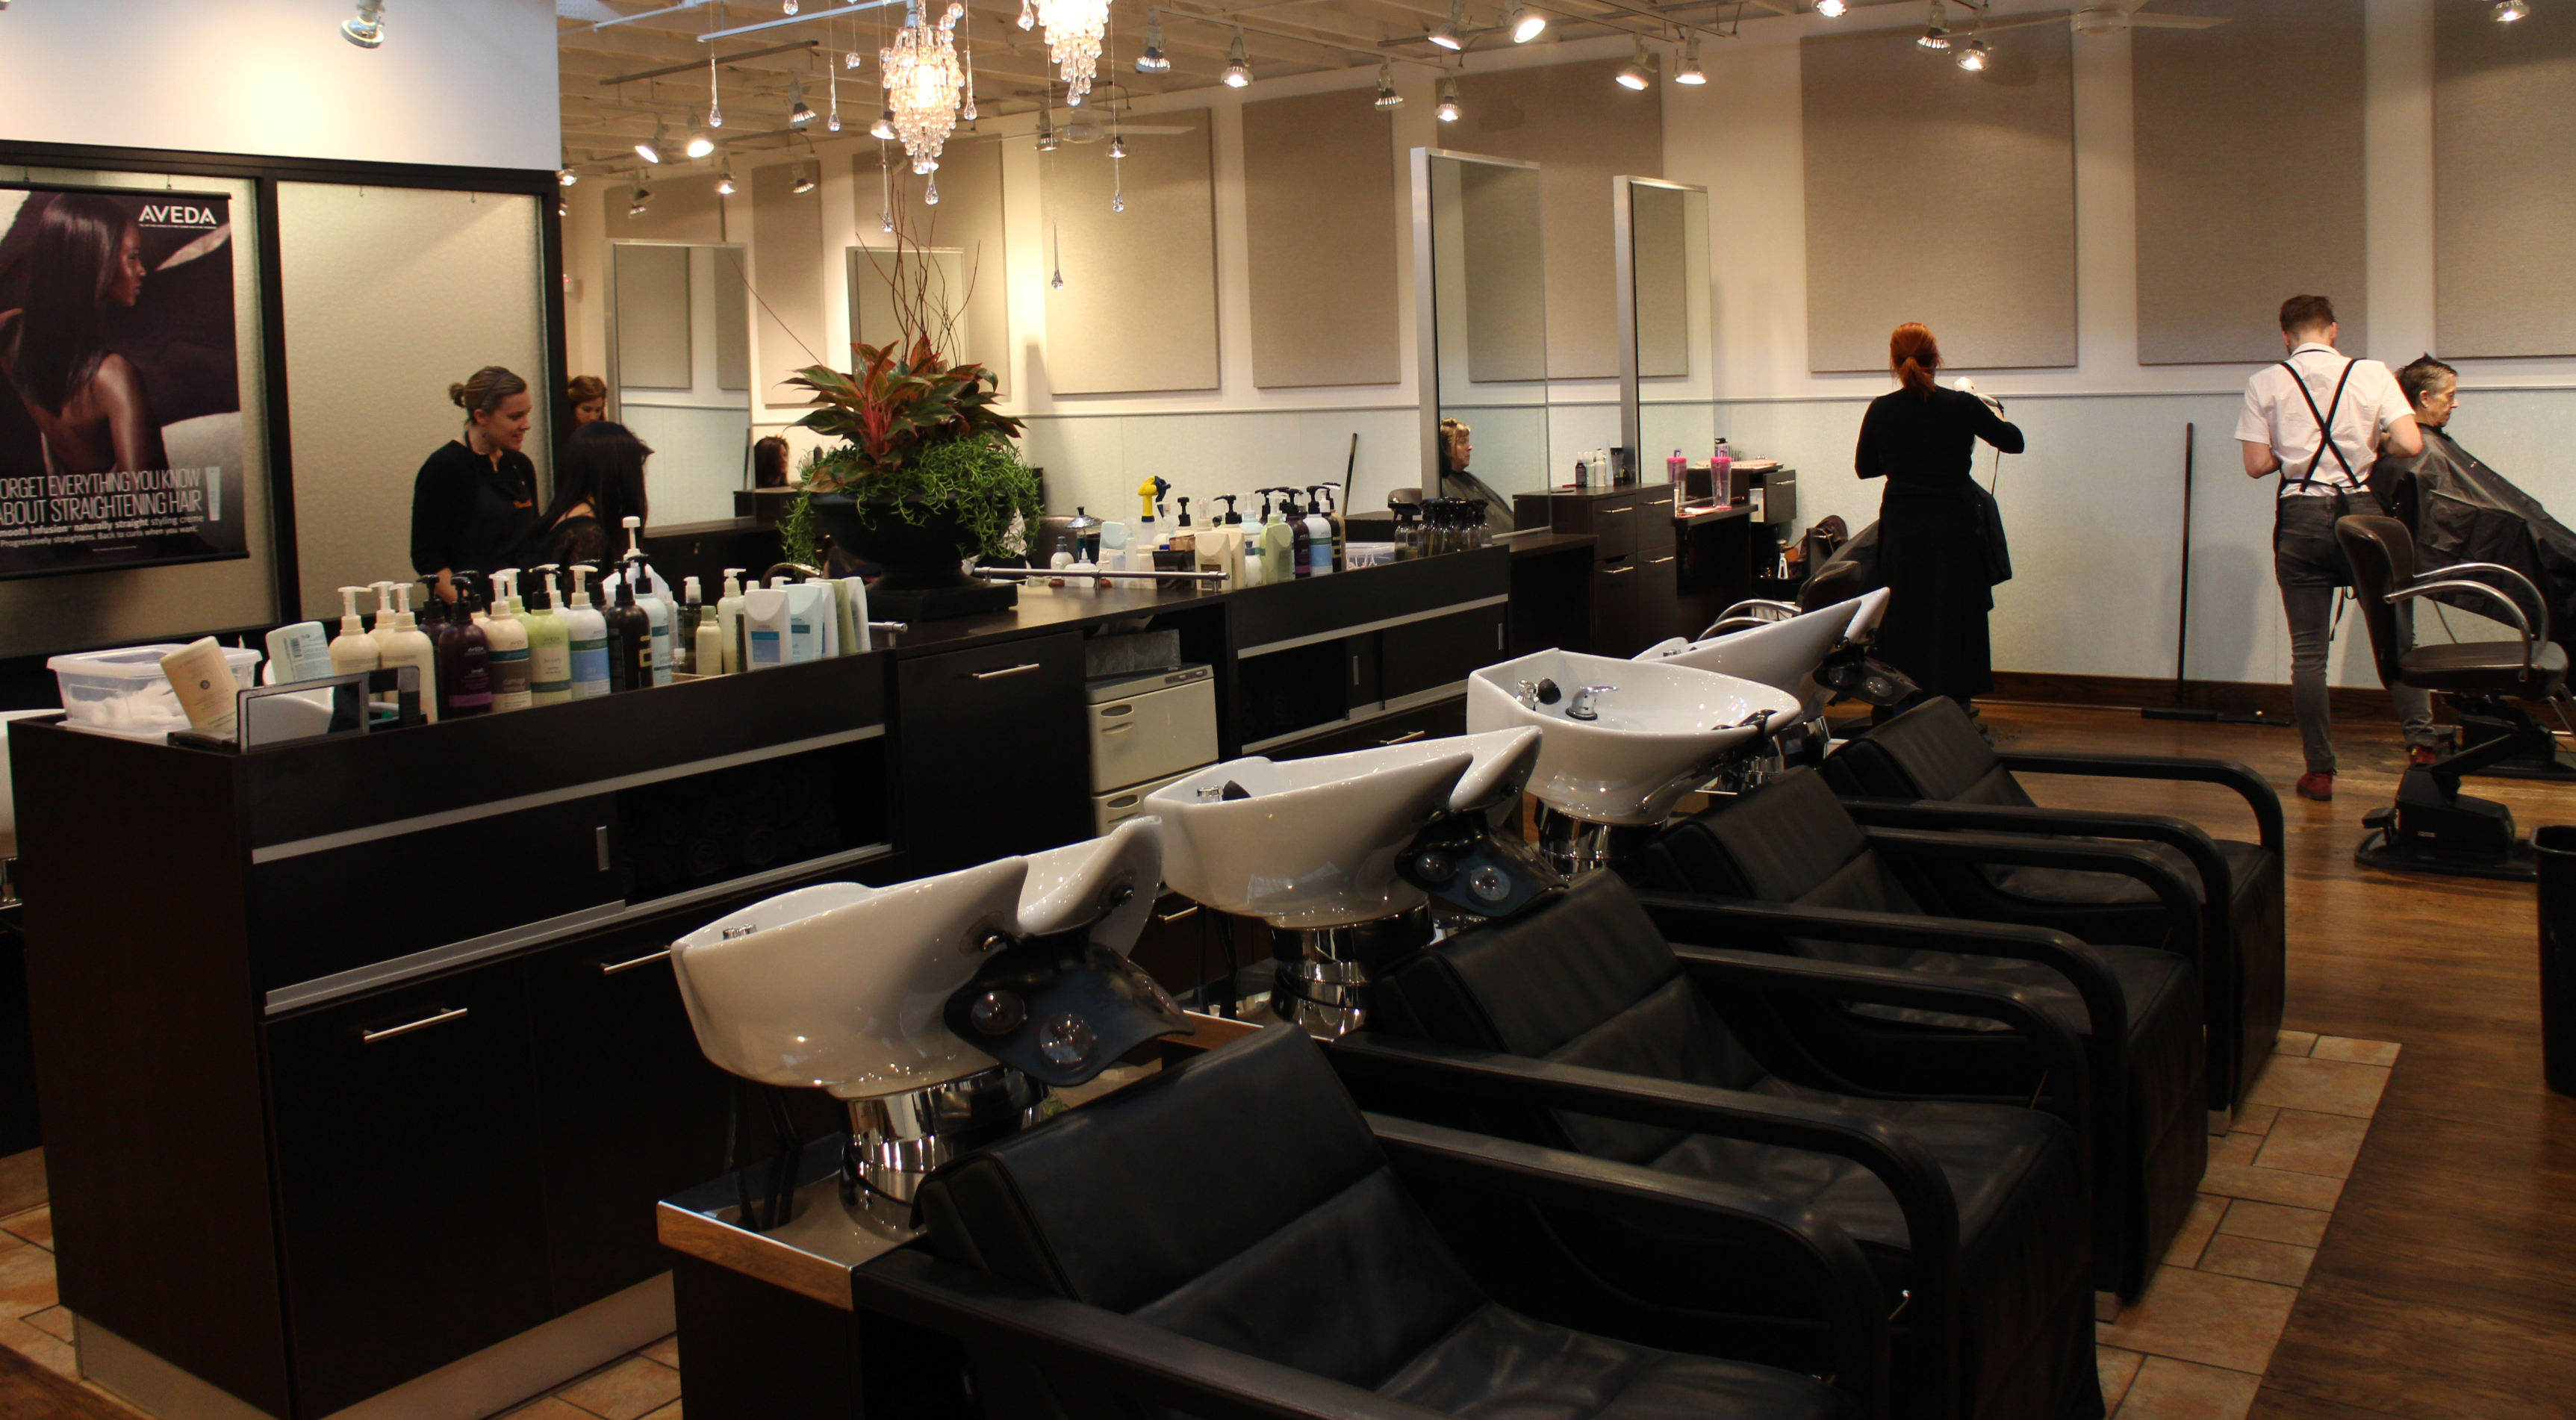 Salon grows into third location richmond bizsense for 3rd avenue salon